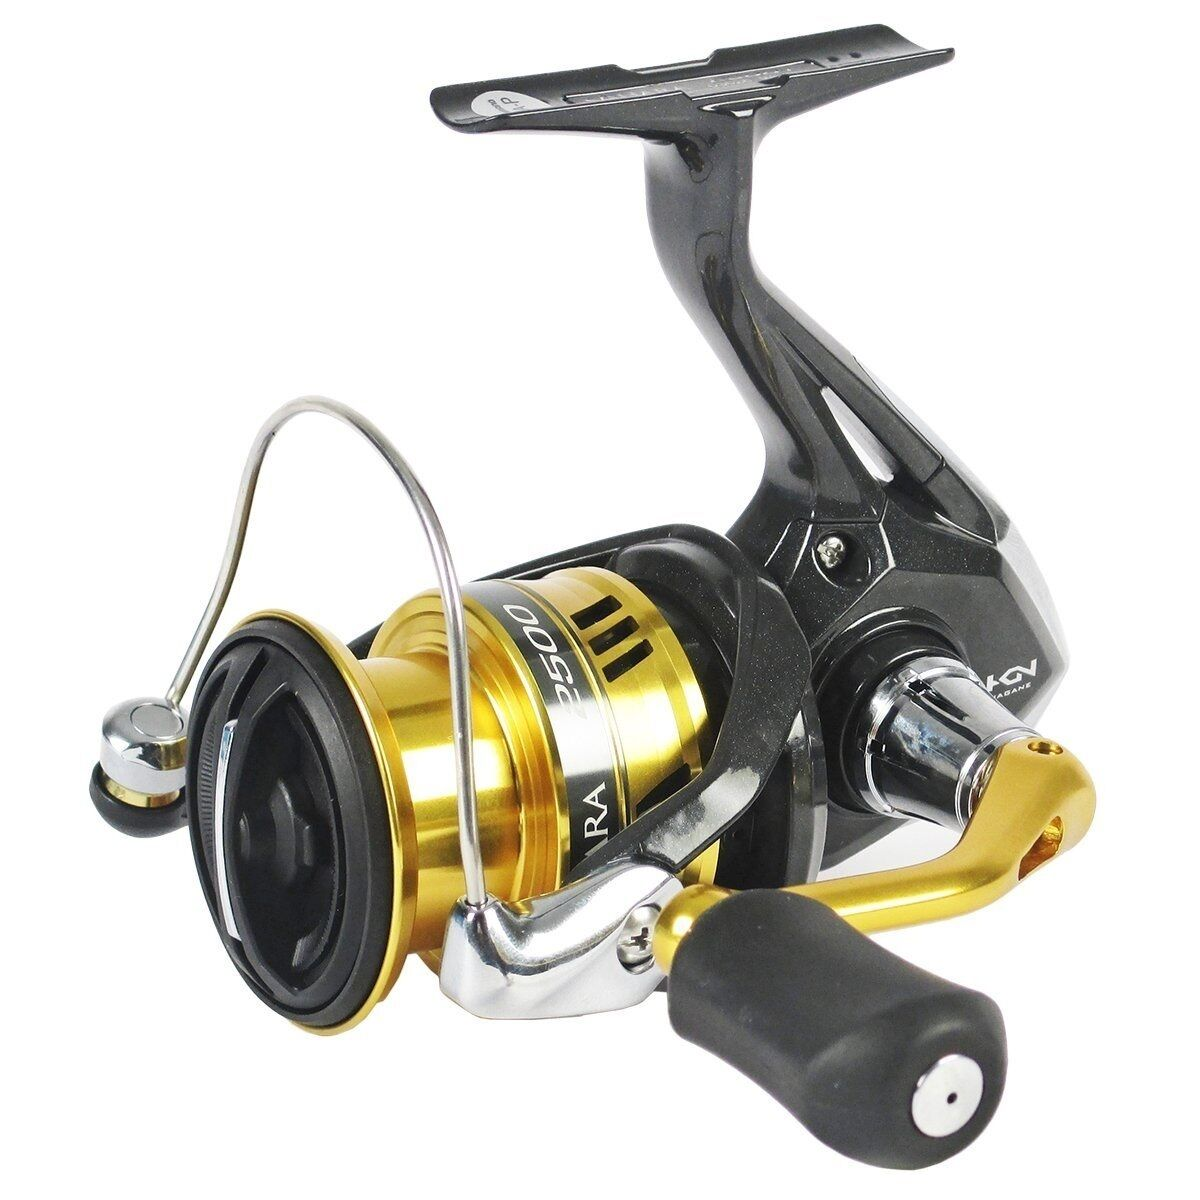 Shimano 17 SAHARA 2500 Spininng Reel New in Box New